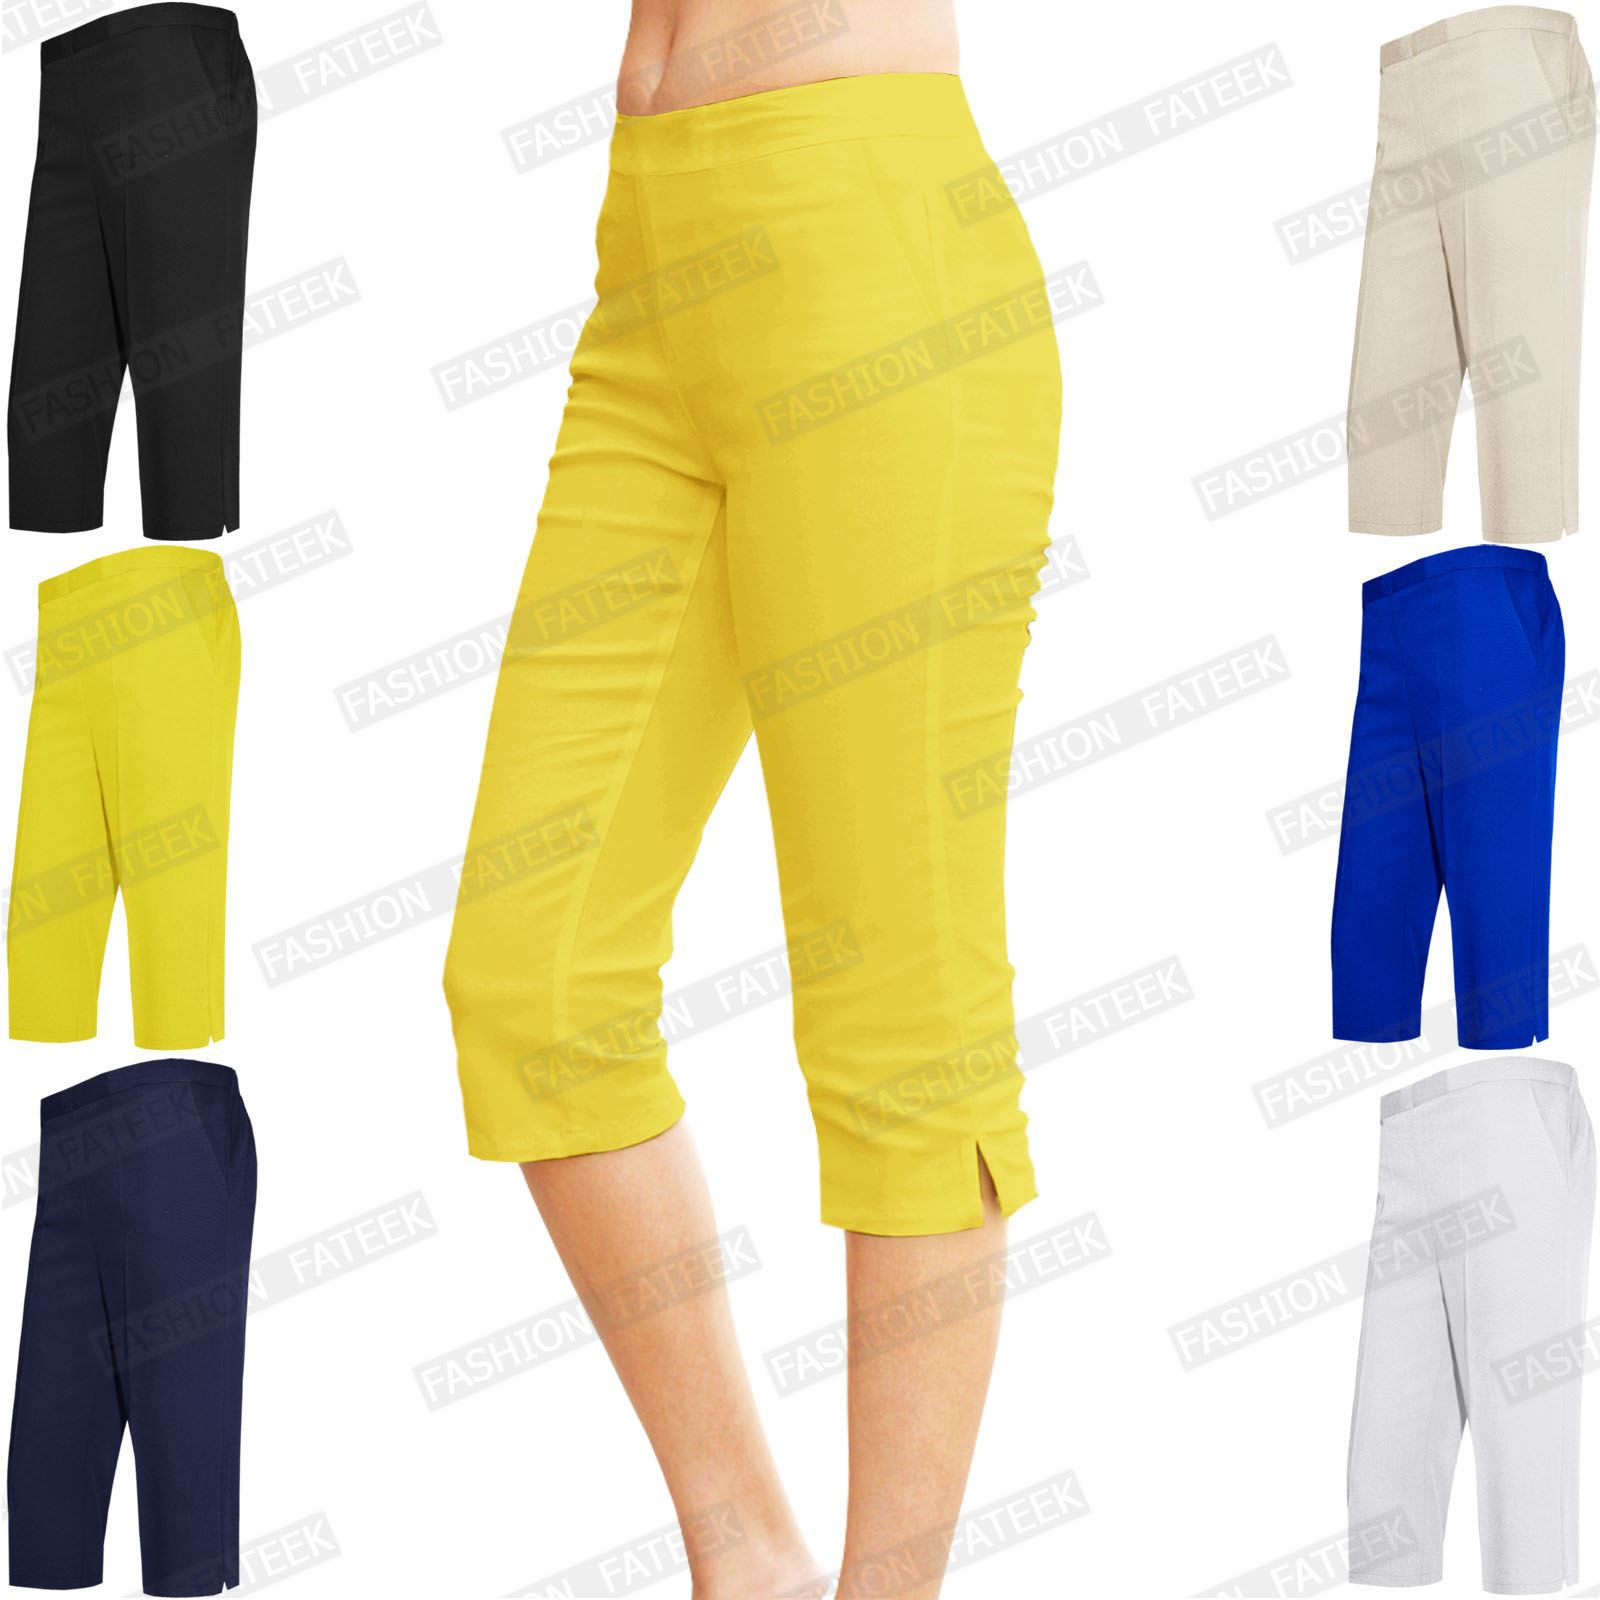 WOMENS LADIES 3/4 SHORTS CAPRI CROPPED TROUSERS POCKETS HALF ...